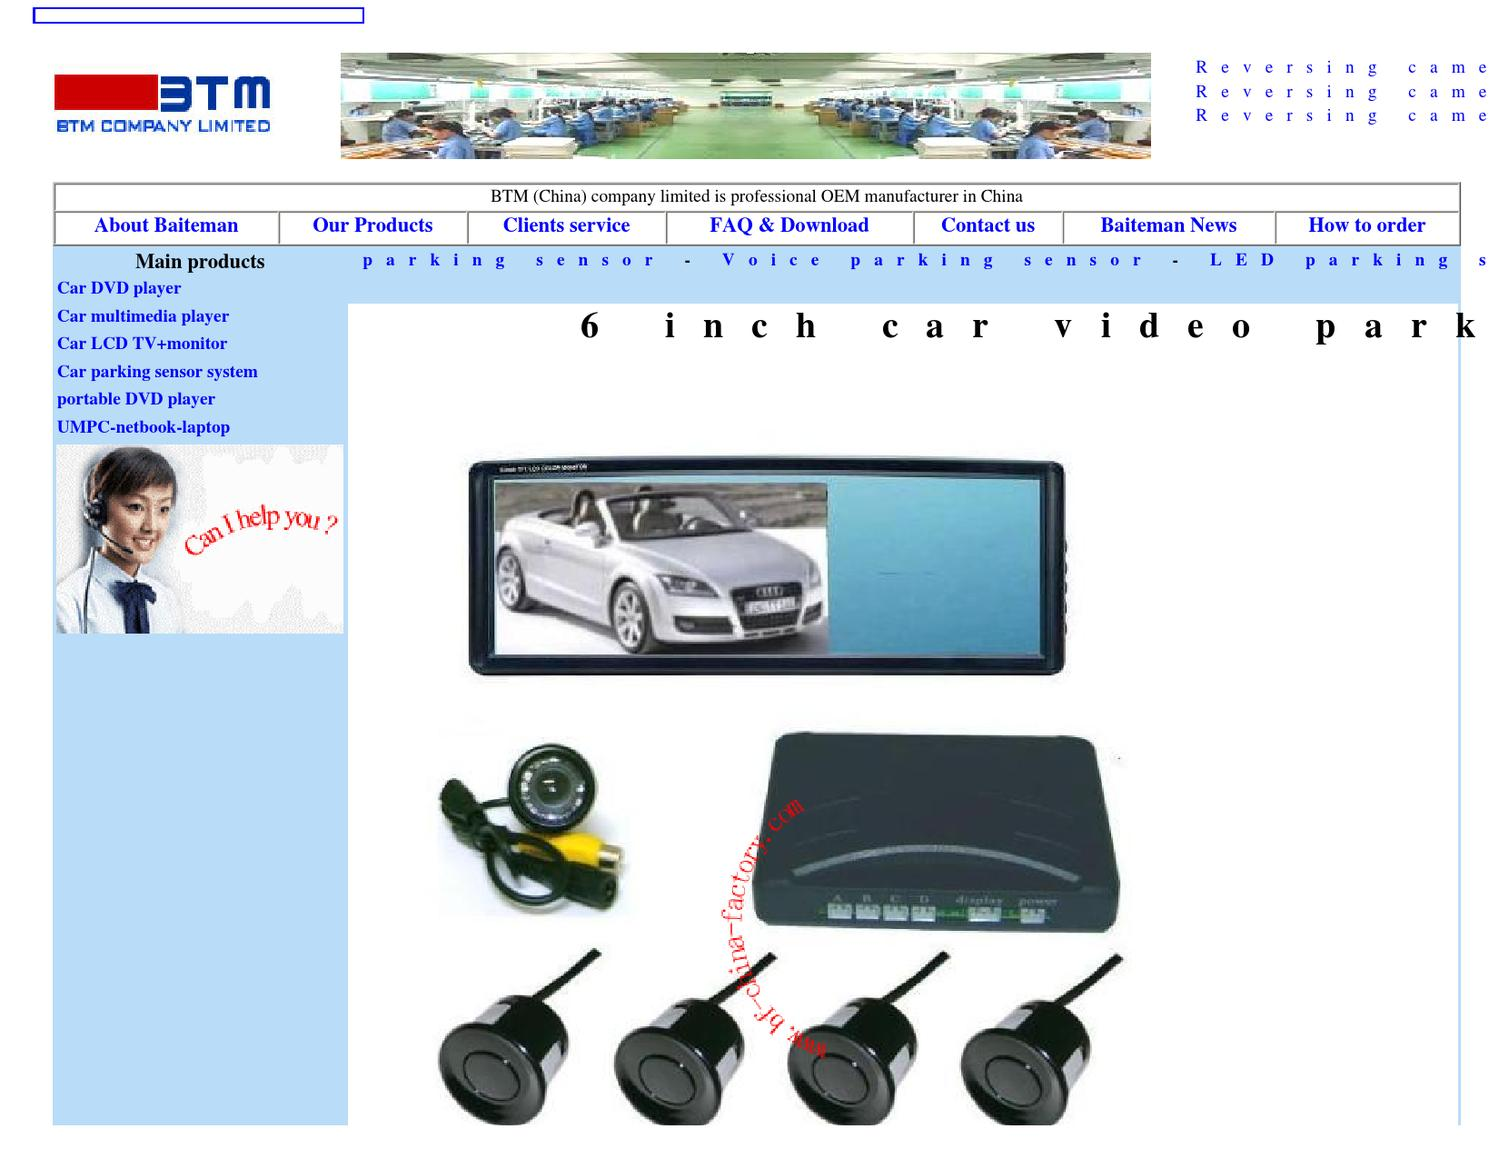 6 inch car video parking system by Michael Augusto - issuu